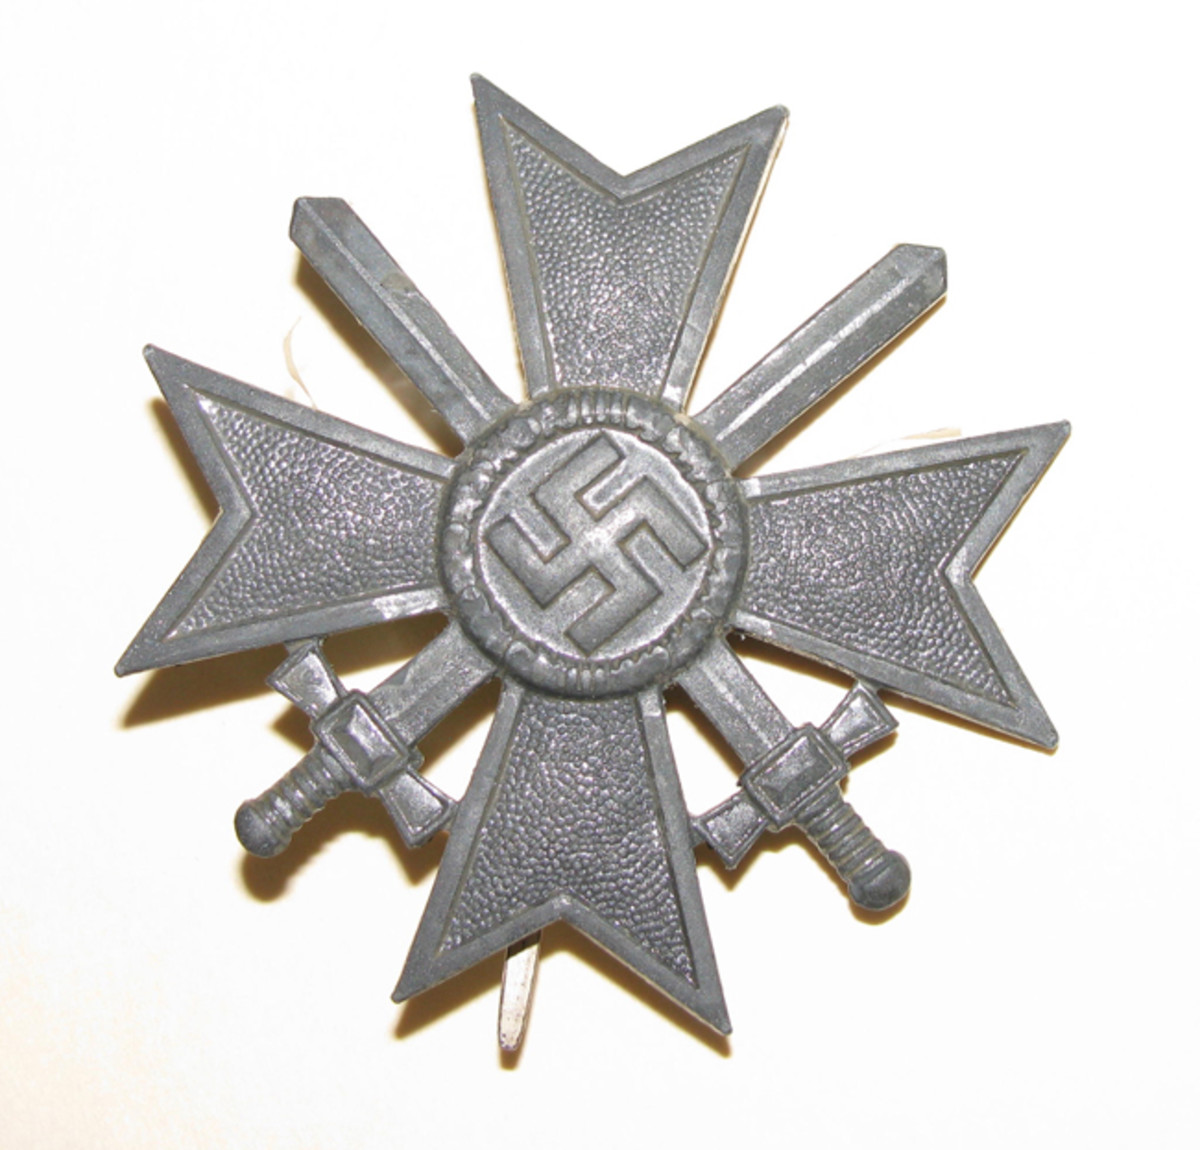 First Class Crosses with swords were produced of polished zinc as the war progressed.